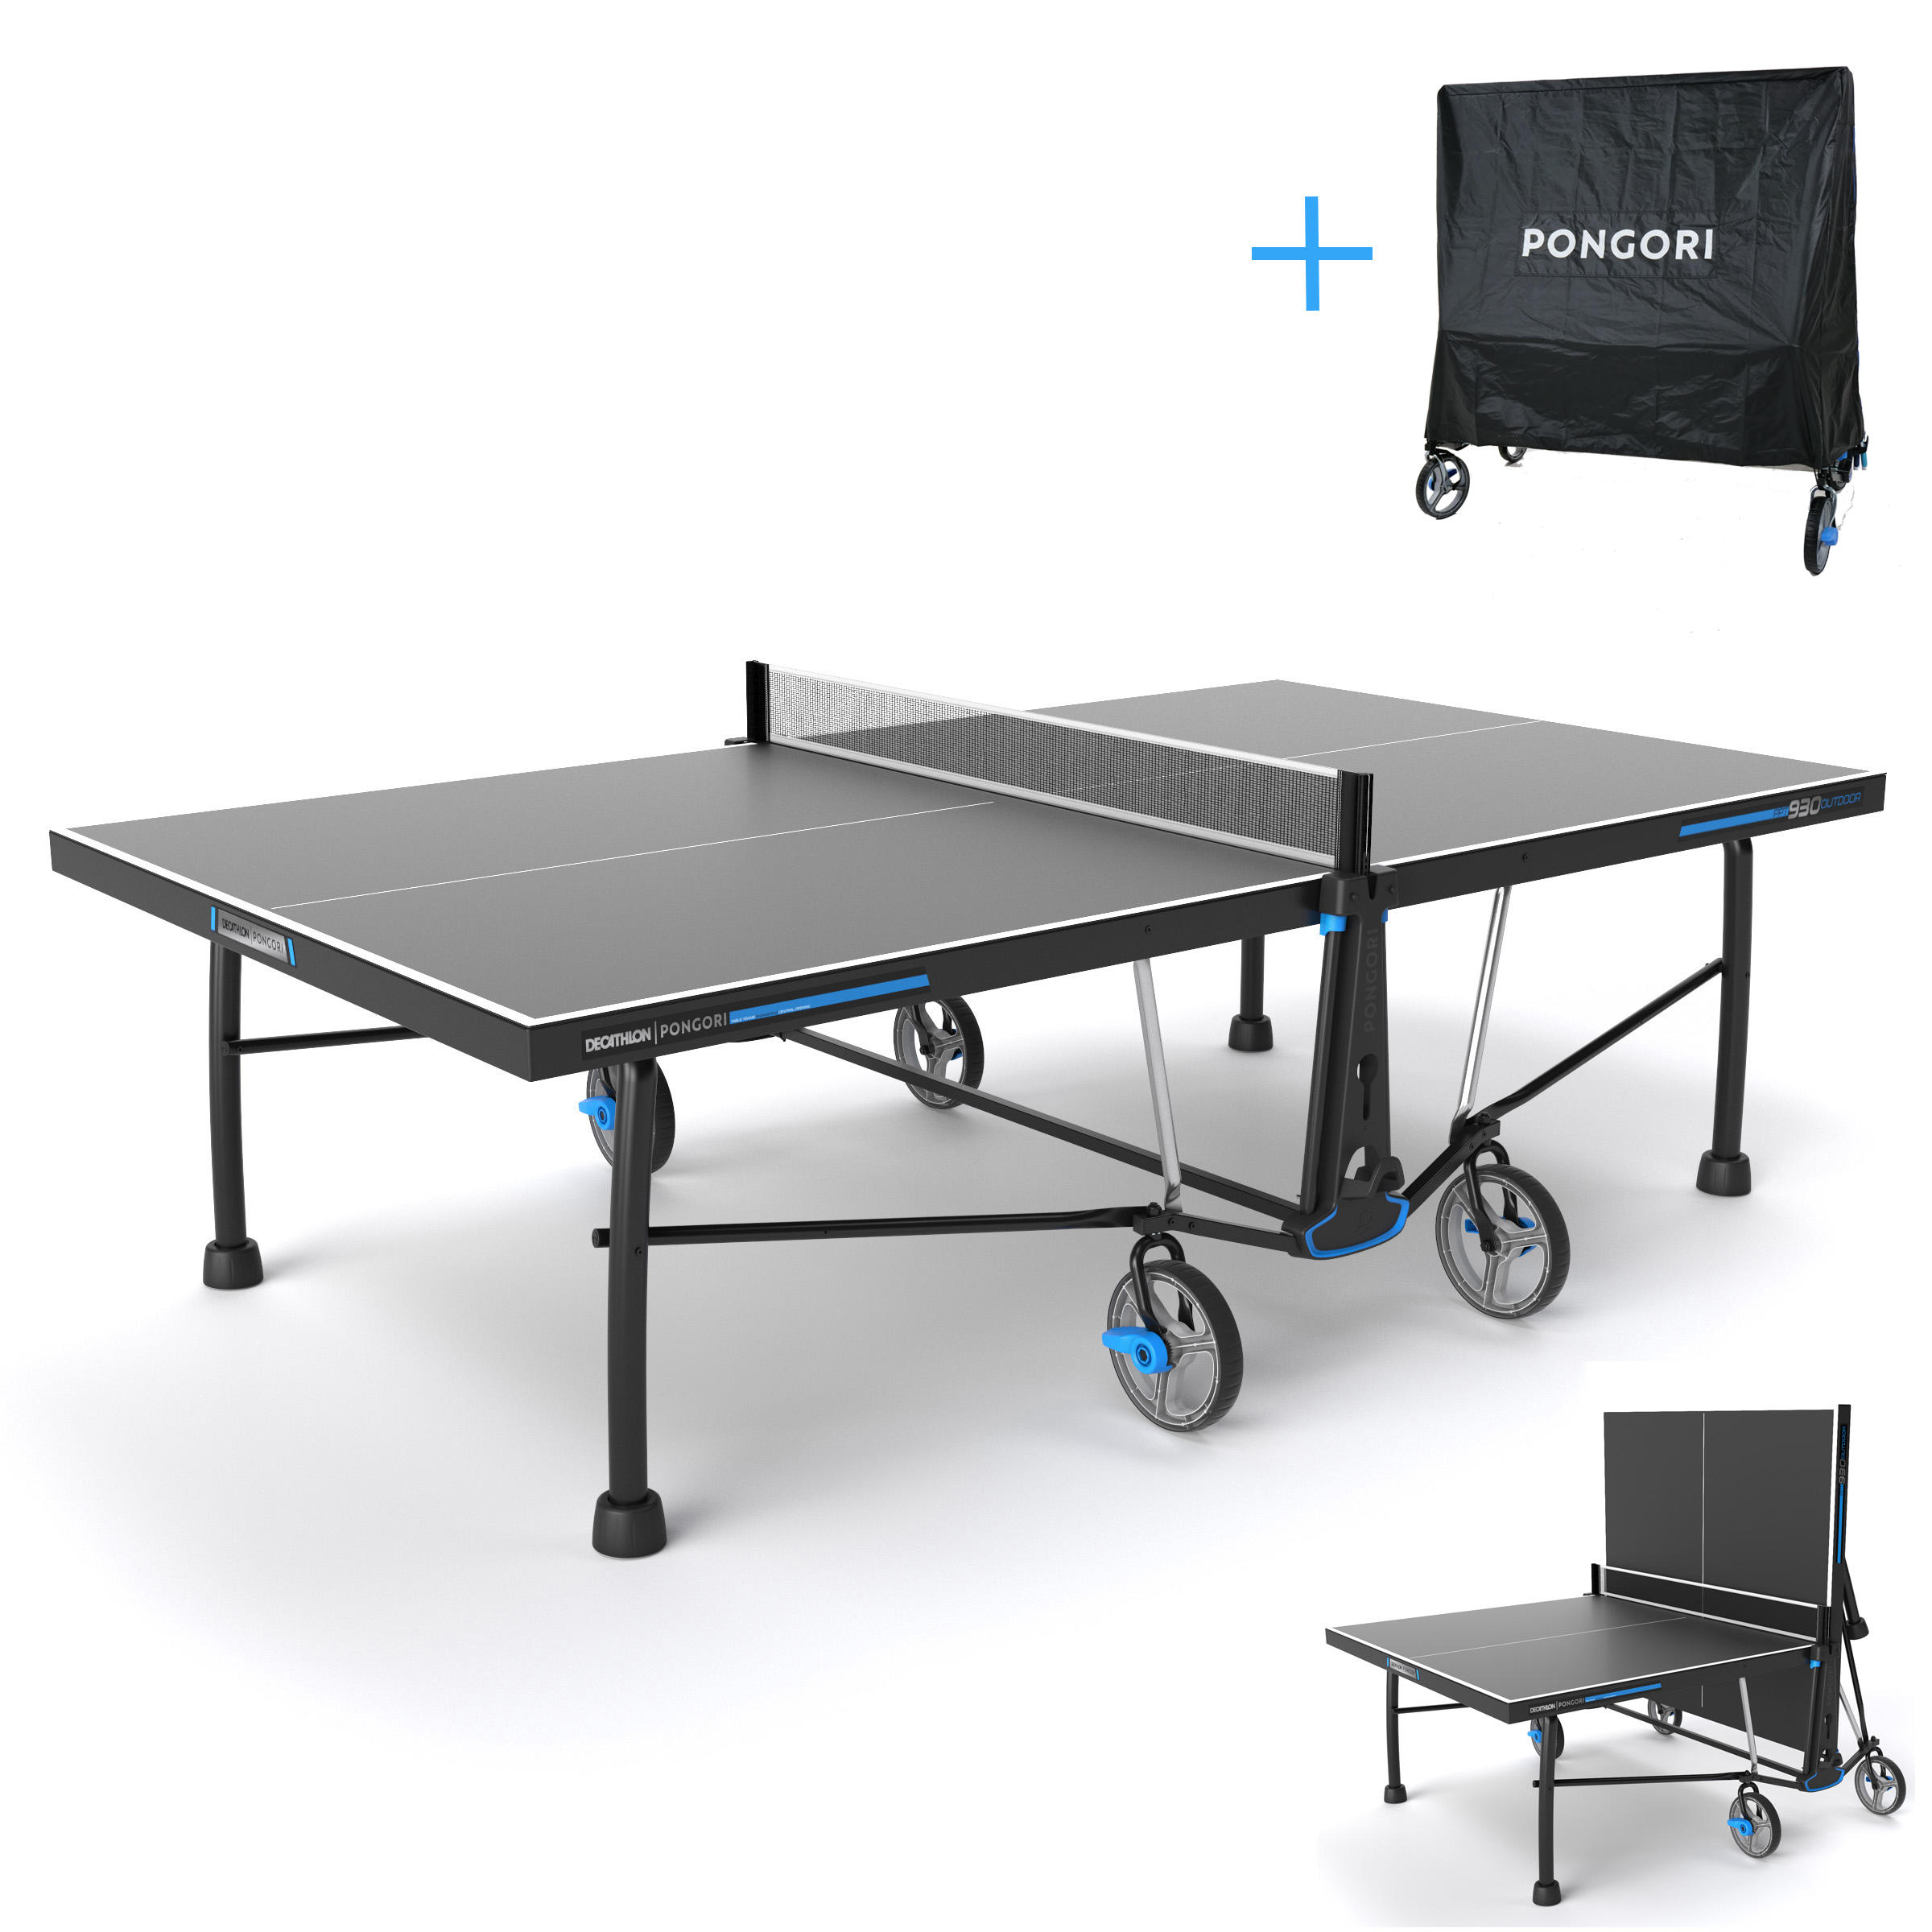 sc 1 st  Decathlon & PPT 930 Outdoor Free Table Tennis Table + Cover